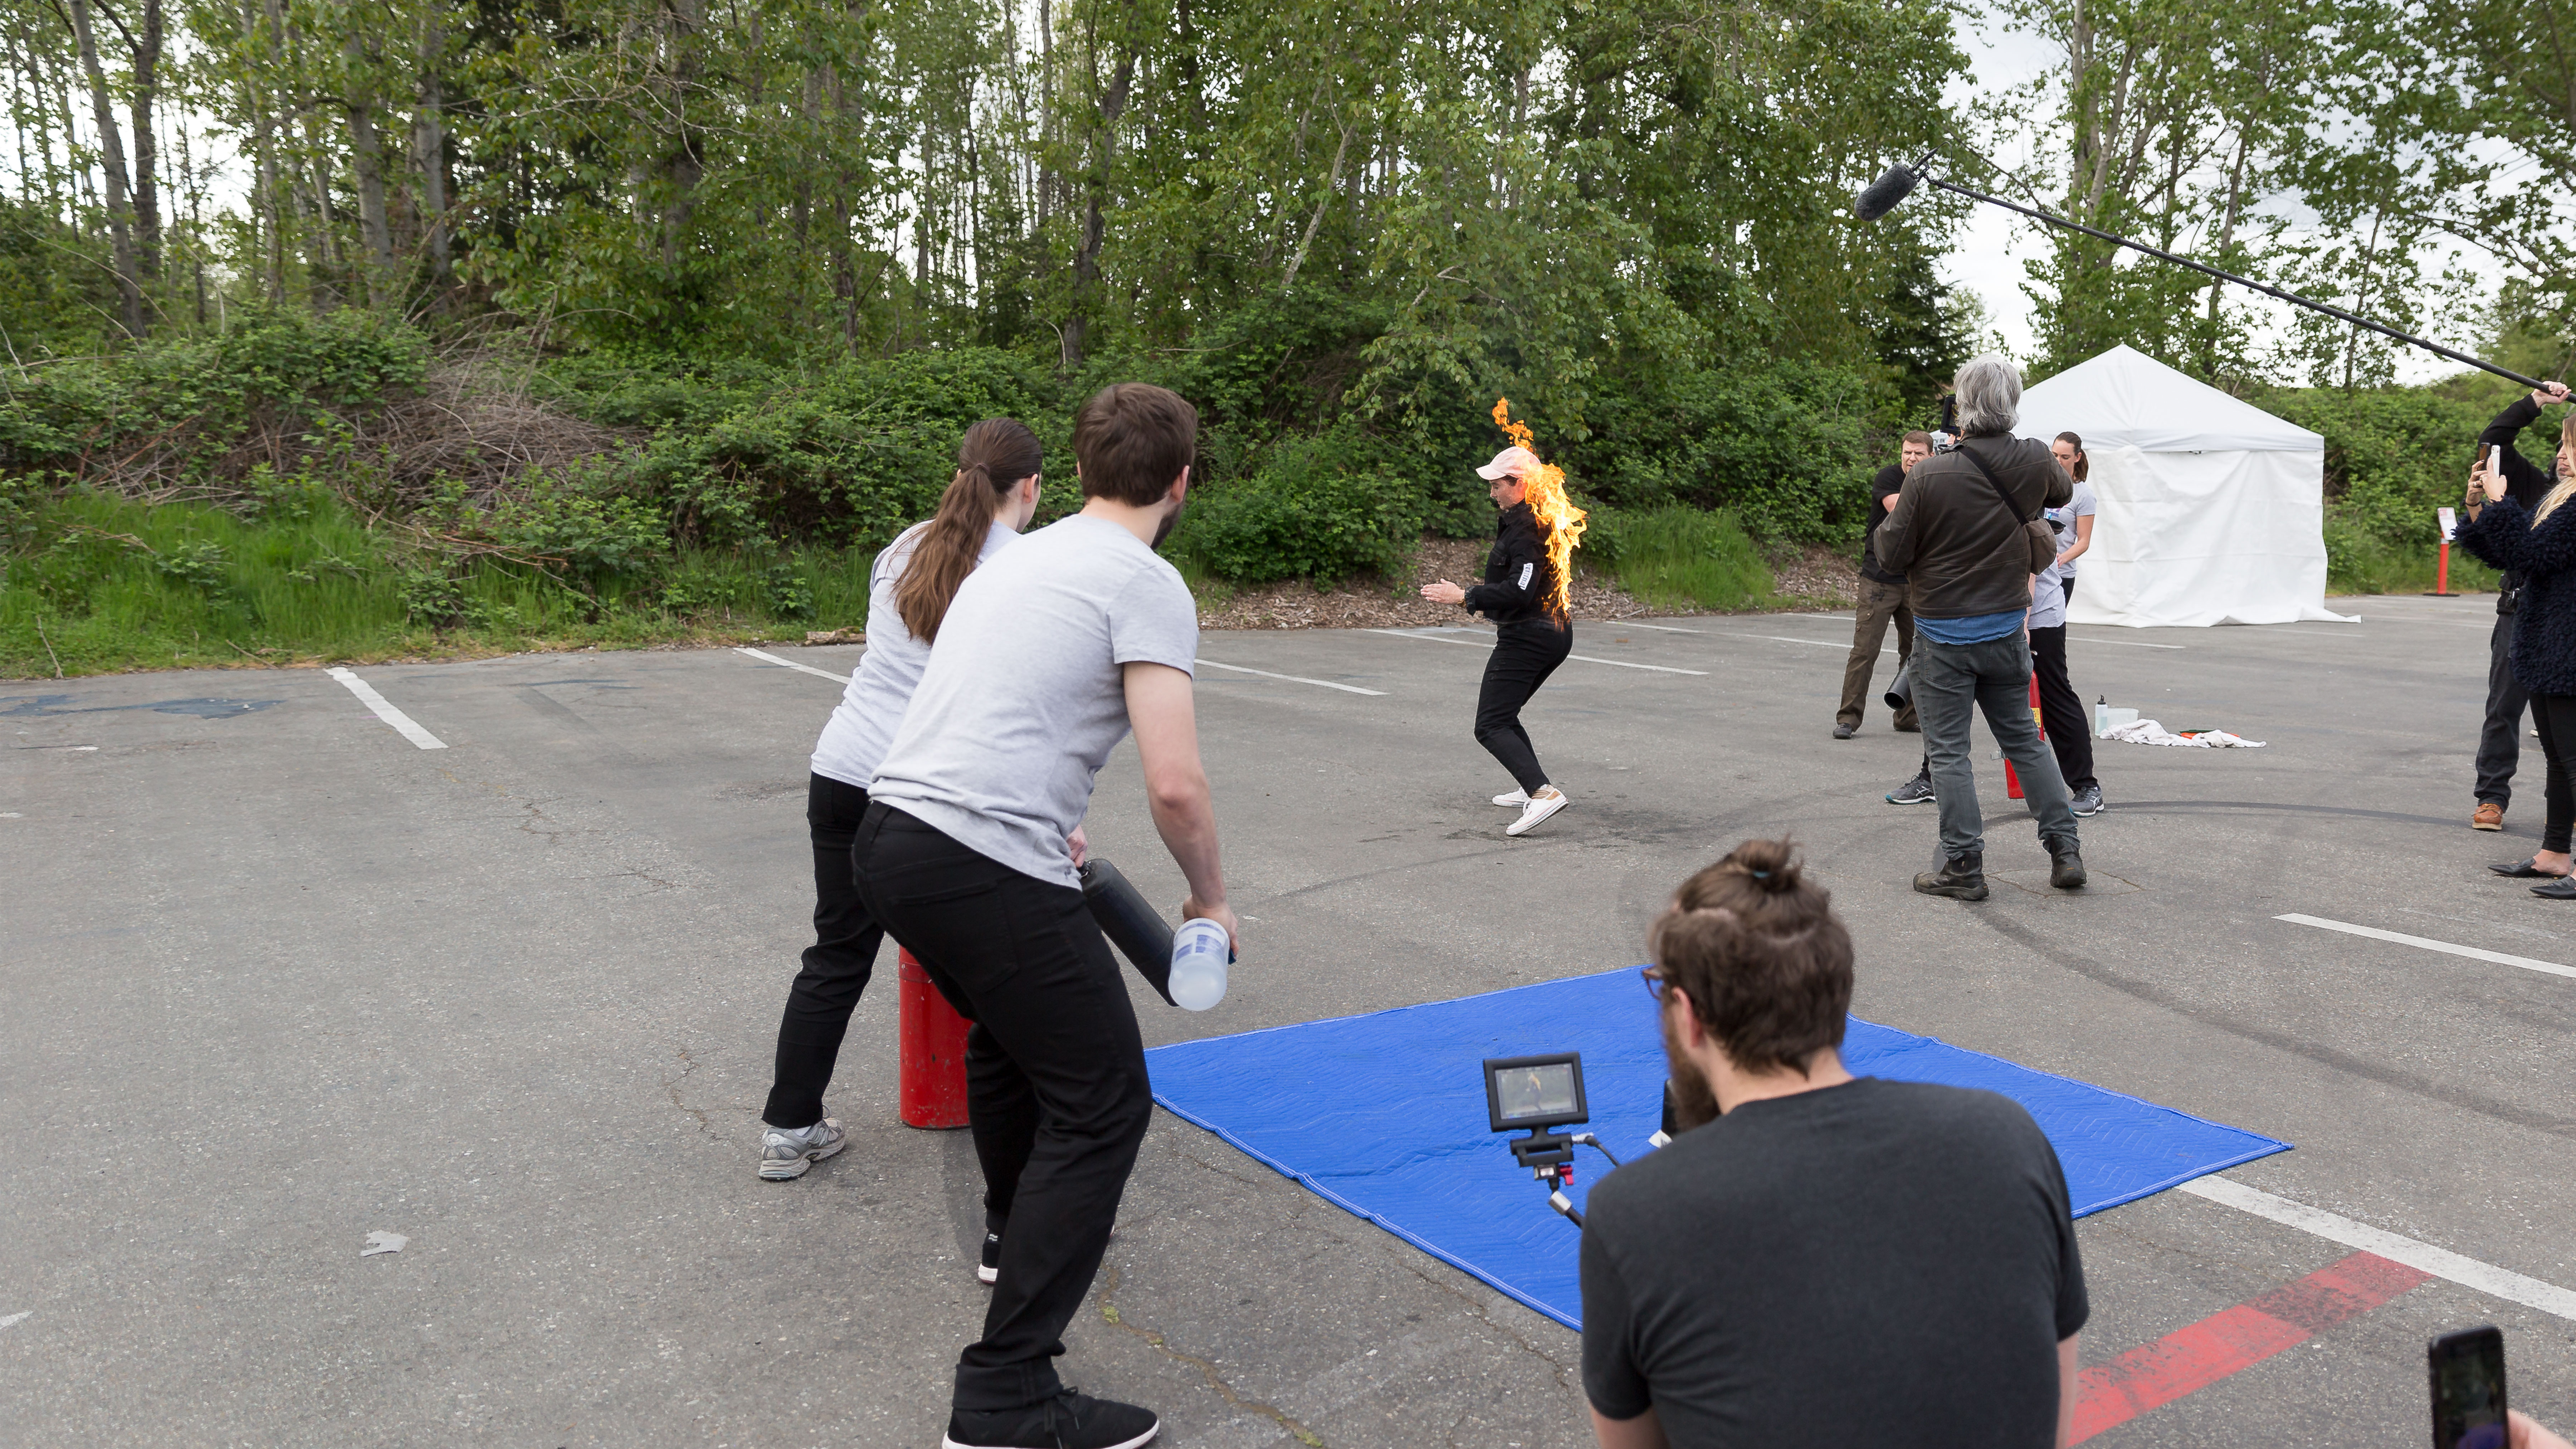 Video production crew filming a stunt school of a woman on fire